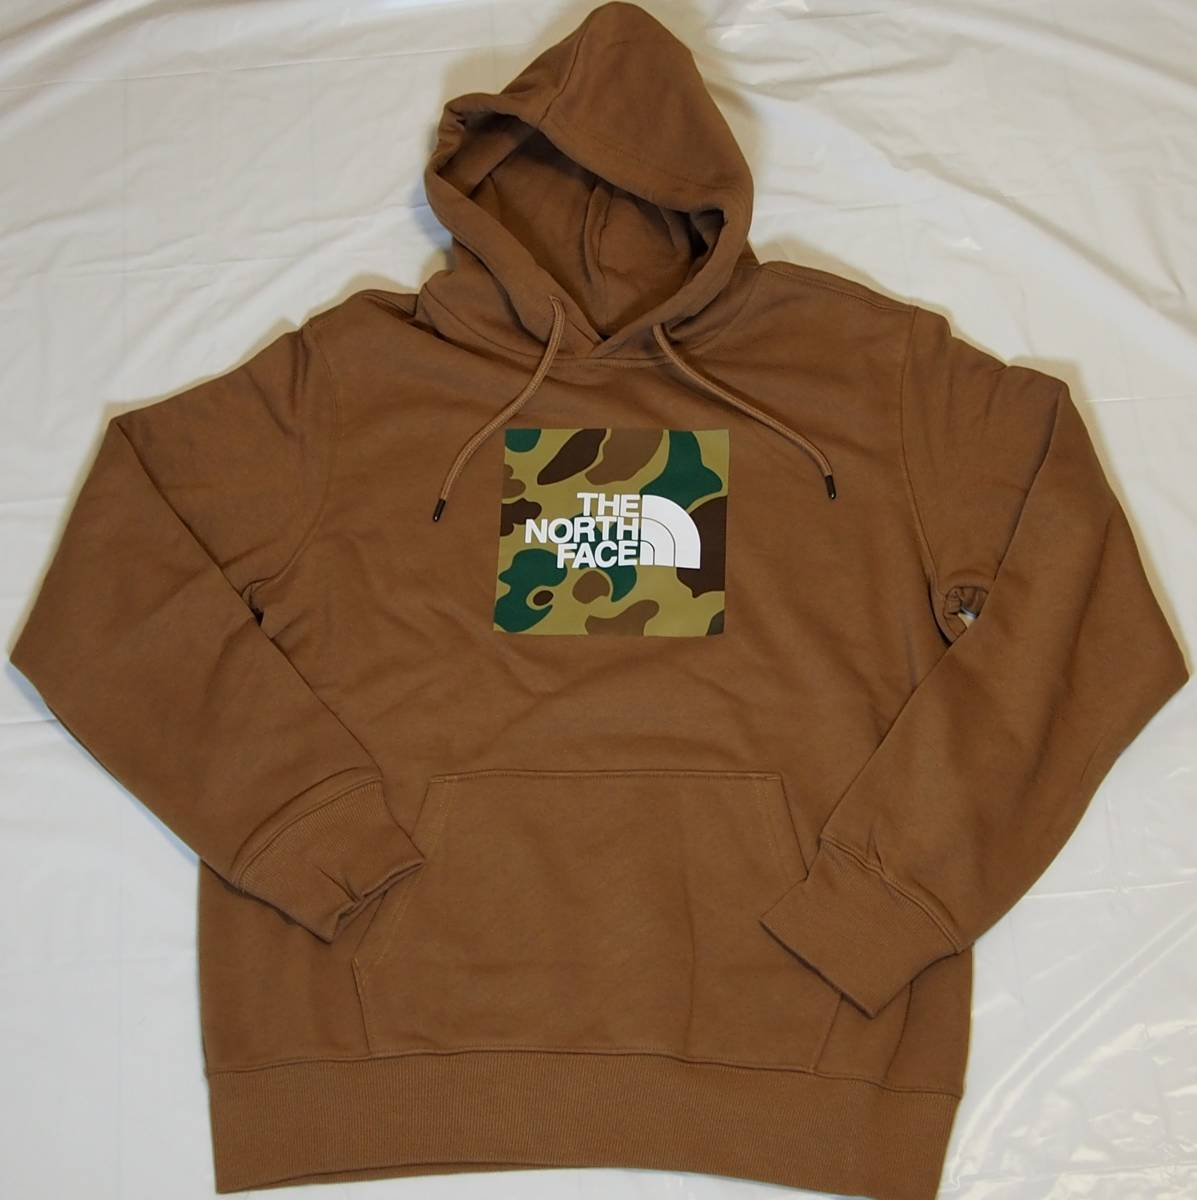 【USA購入、未使用タグ付】ノースフェイス メンズ パーカー Mサイズ ブラウン The North Face Boxed In Pullover Hoodie_画像1